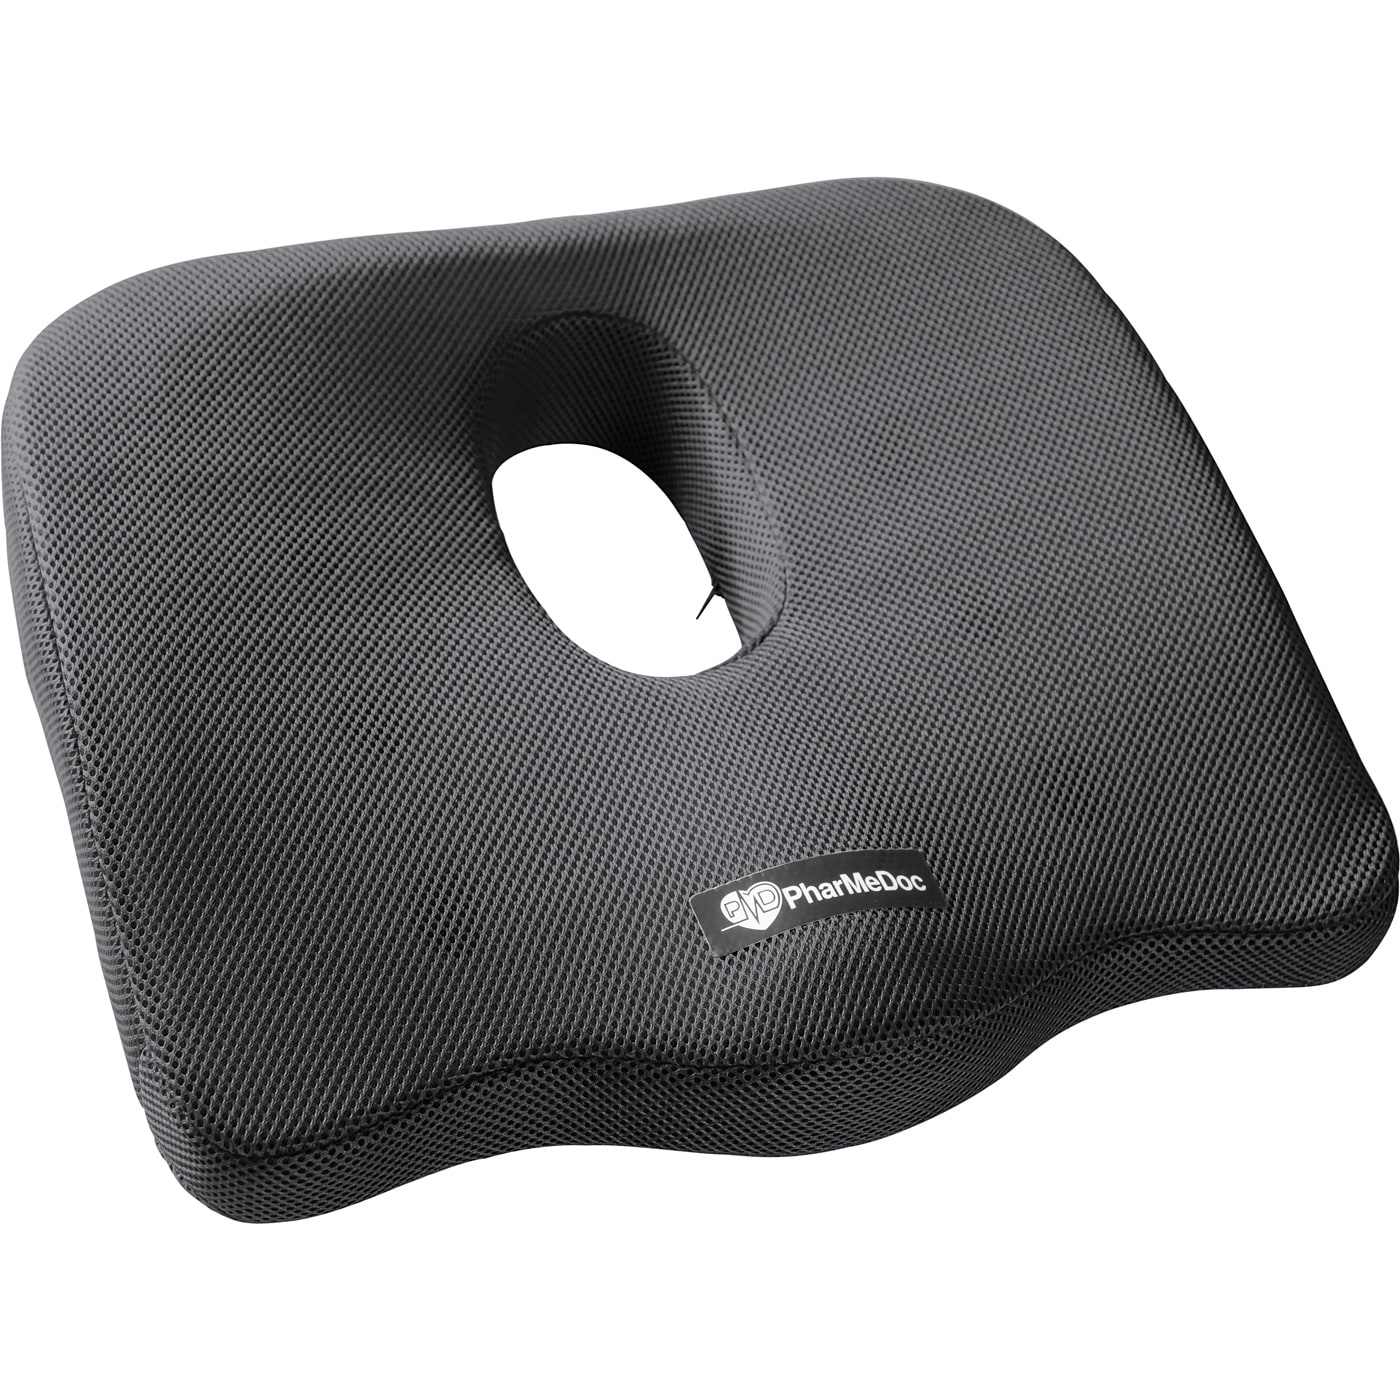 cushion kieba review cushions gel coccyx pillow the comfort best for added seat